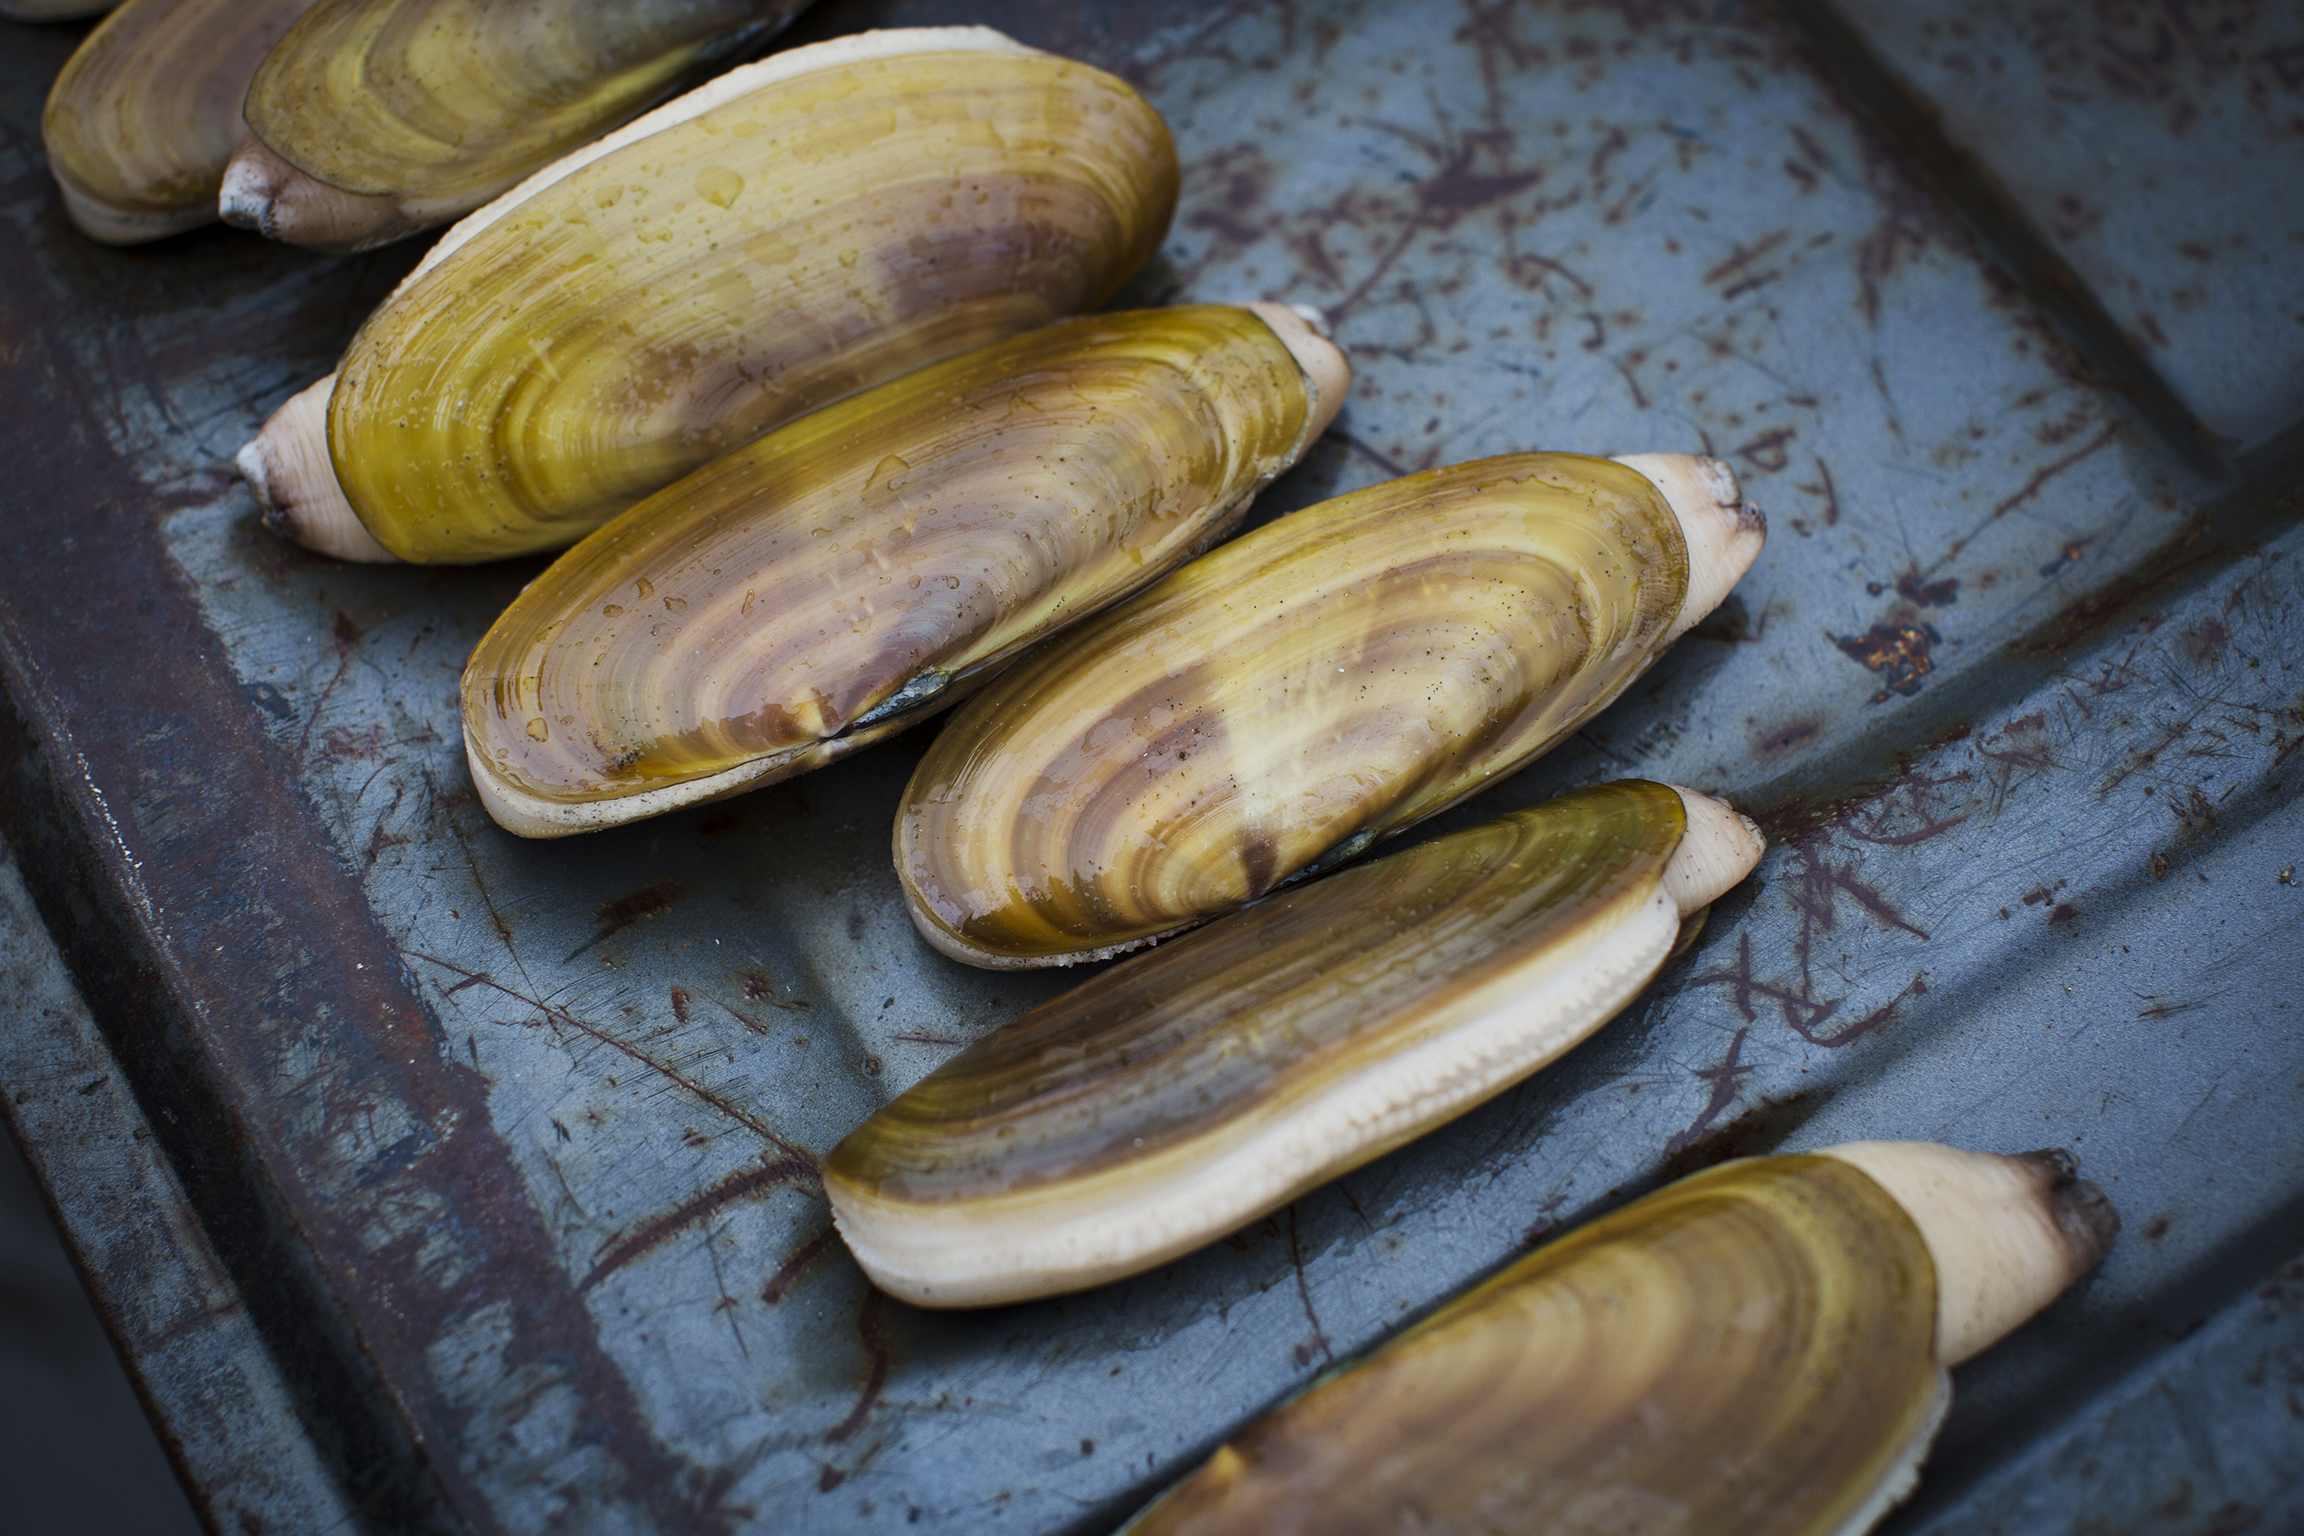 Richard Darbonne gets up close and personal to the coveted gold shelled clams for 1859 Magazine